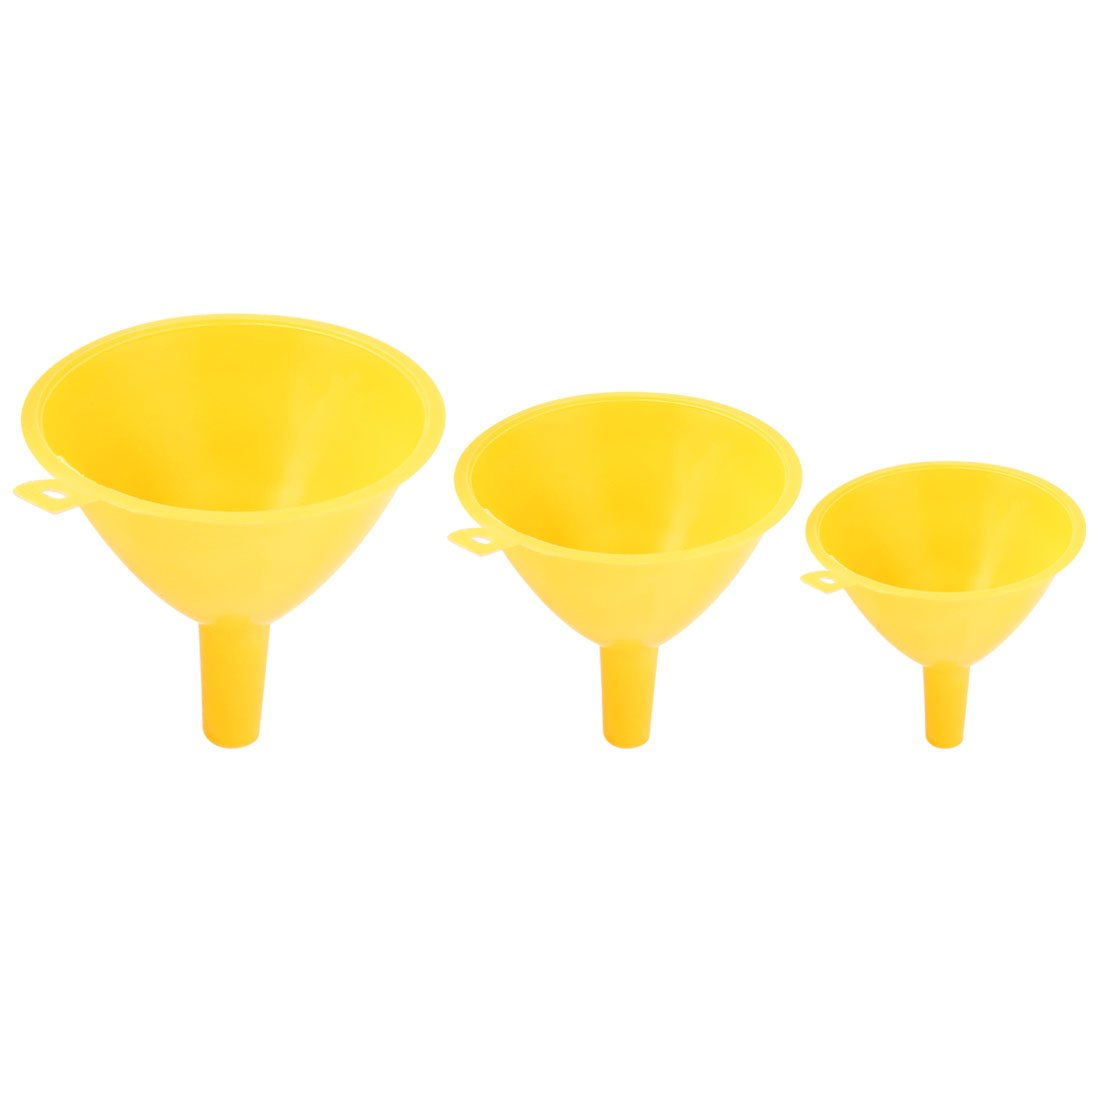 sourcingmap® Lab Tools Plastic Oil Fuel Water Refilling Filter Funnel 3pcs Yellow a14111800ux0664